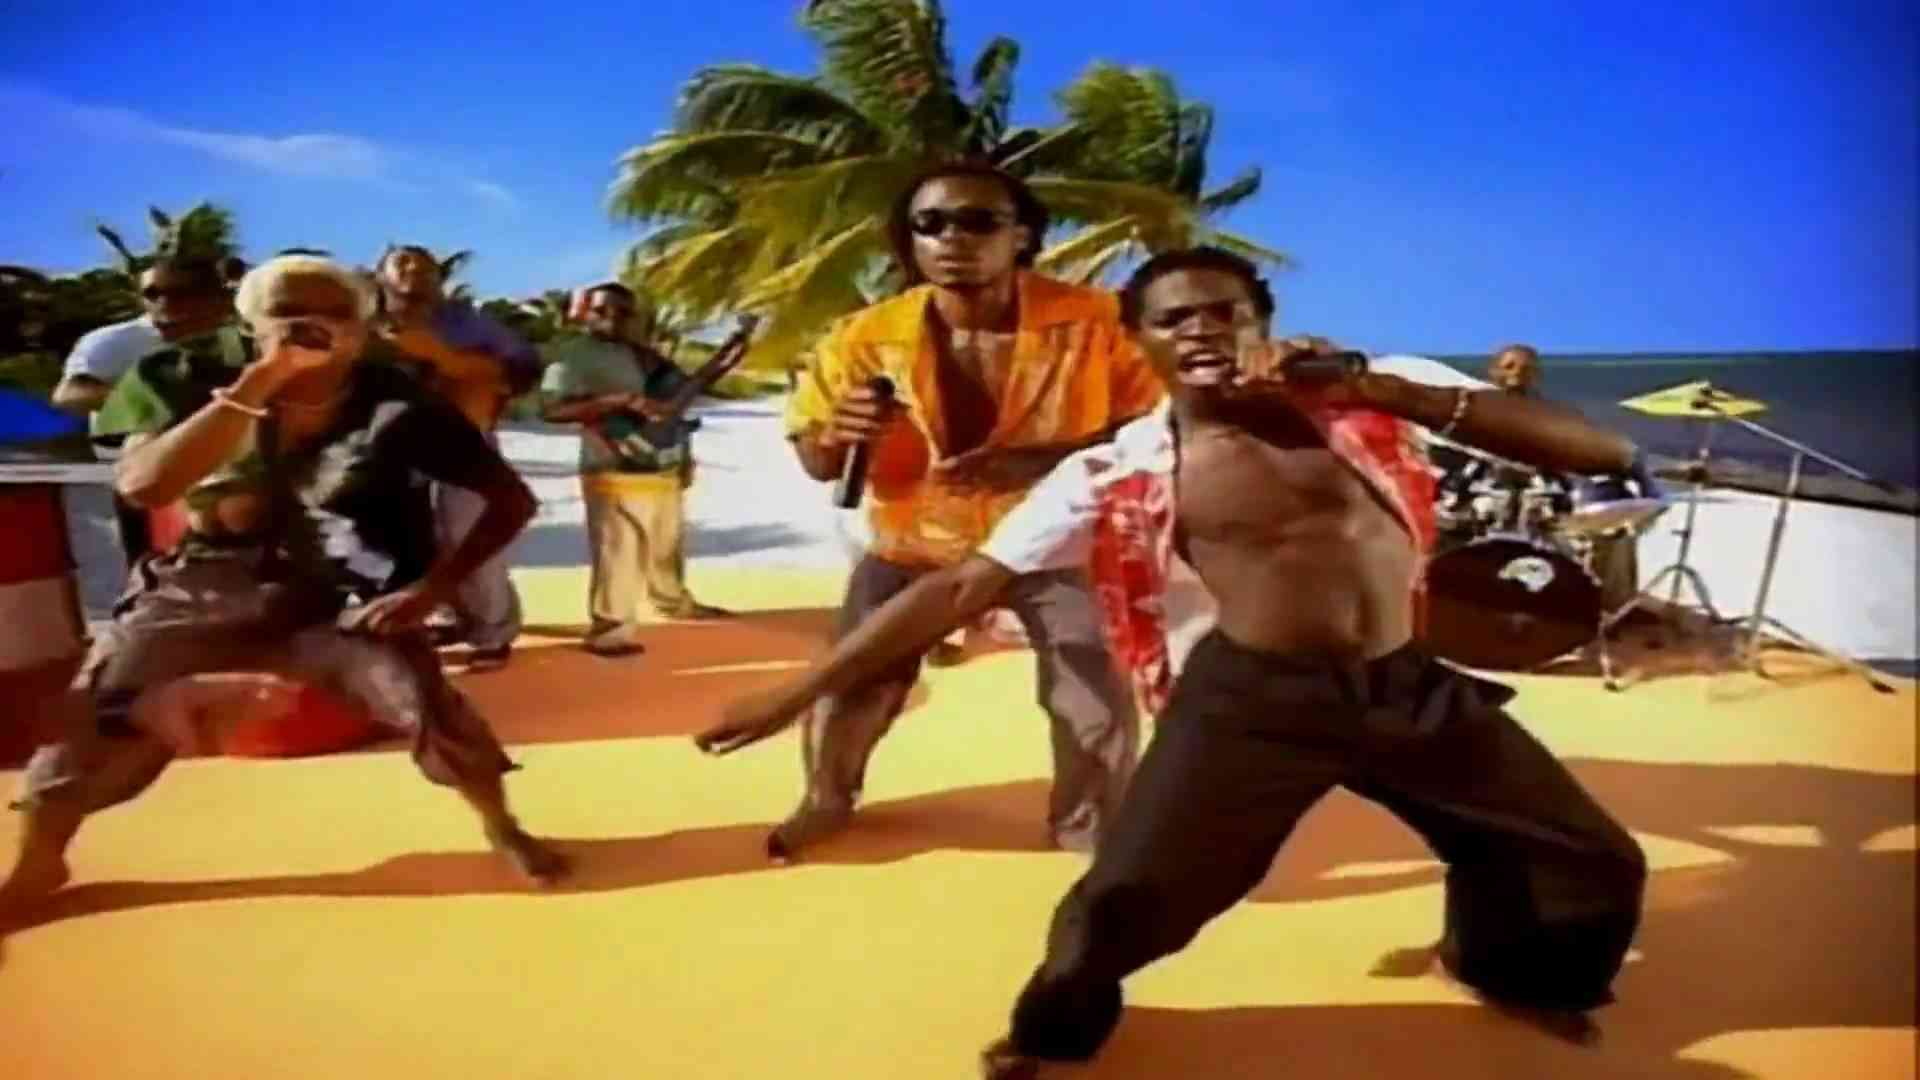 Baha Men - Who Let The Dogs Out (Original version) | Full HD | 1080p - YouTube